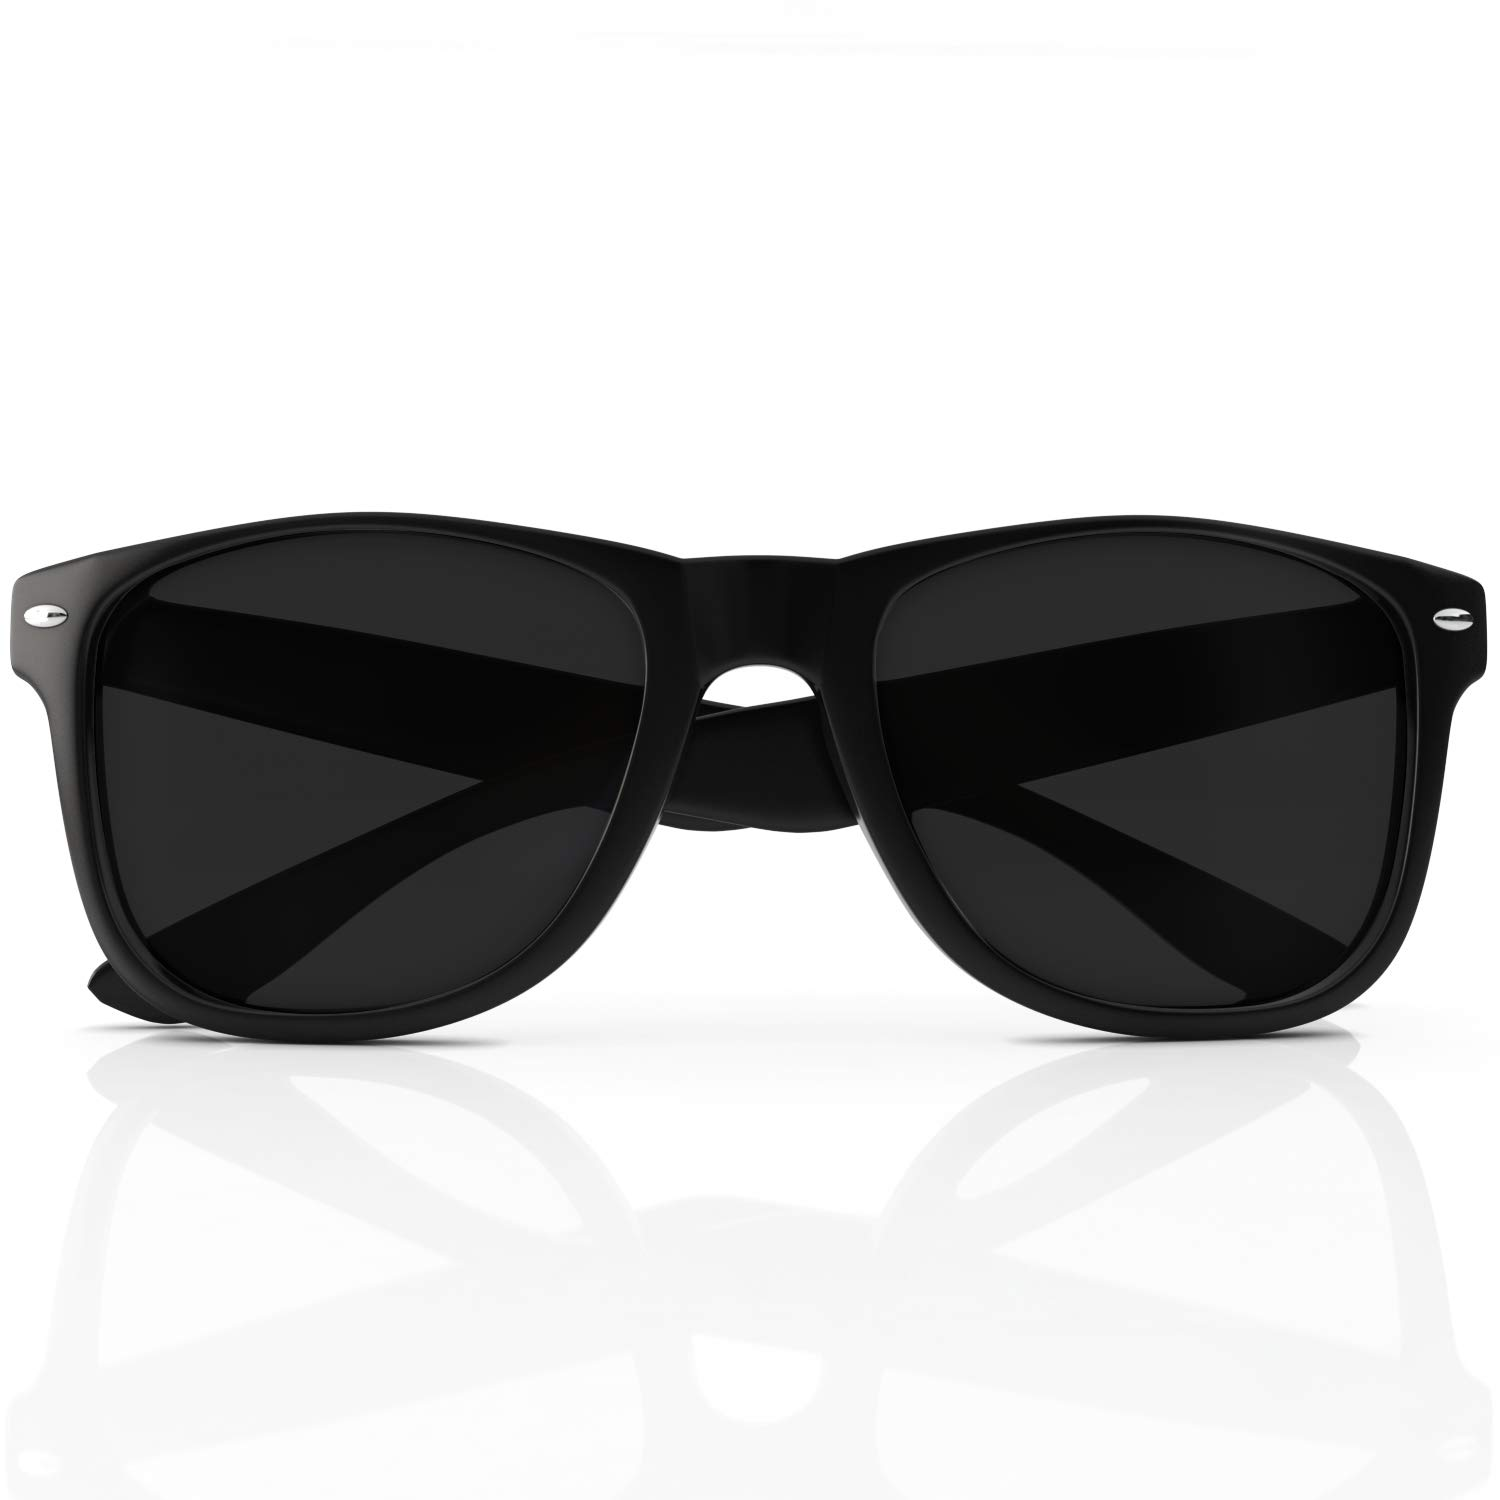 eb03356b0252 Designer Wayfarer Sunglasses - Polarized Uv Protection - Made From Custom  Impact Resistant Material - Maximum Clarity and Color for Fishing Sports  and ...